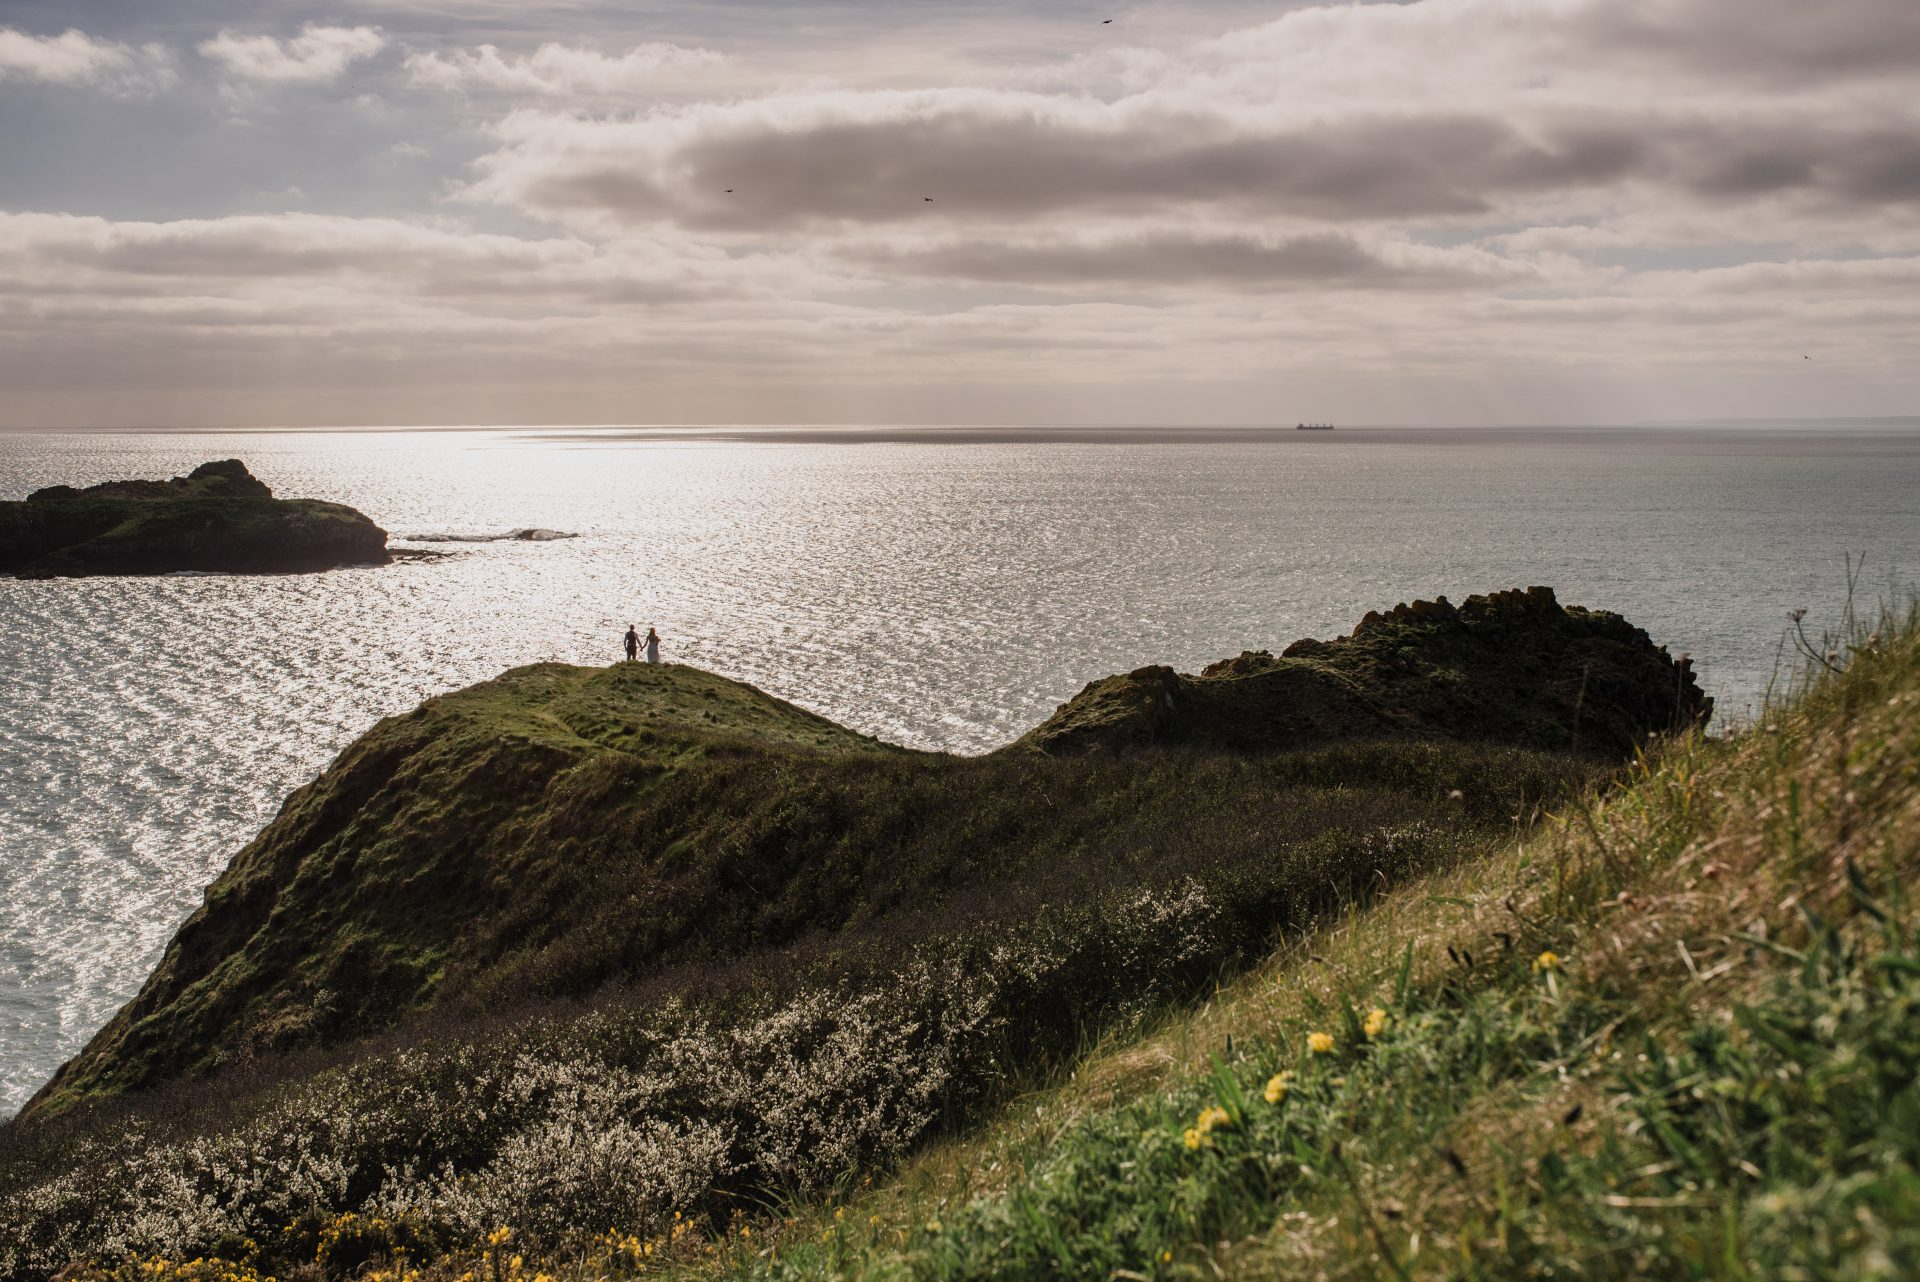 Mullion Cove Wedding - Photography y Stewart Girvan Photography 2020